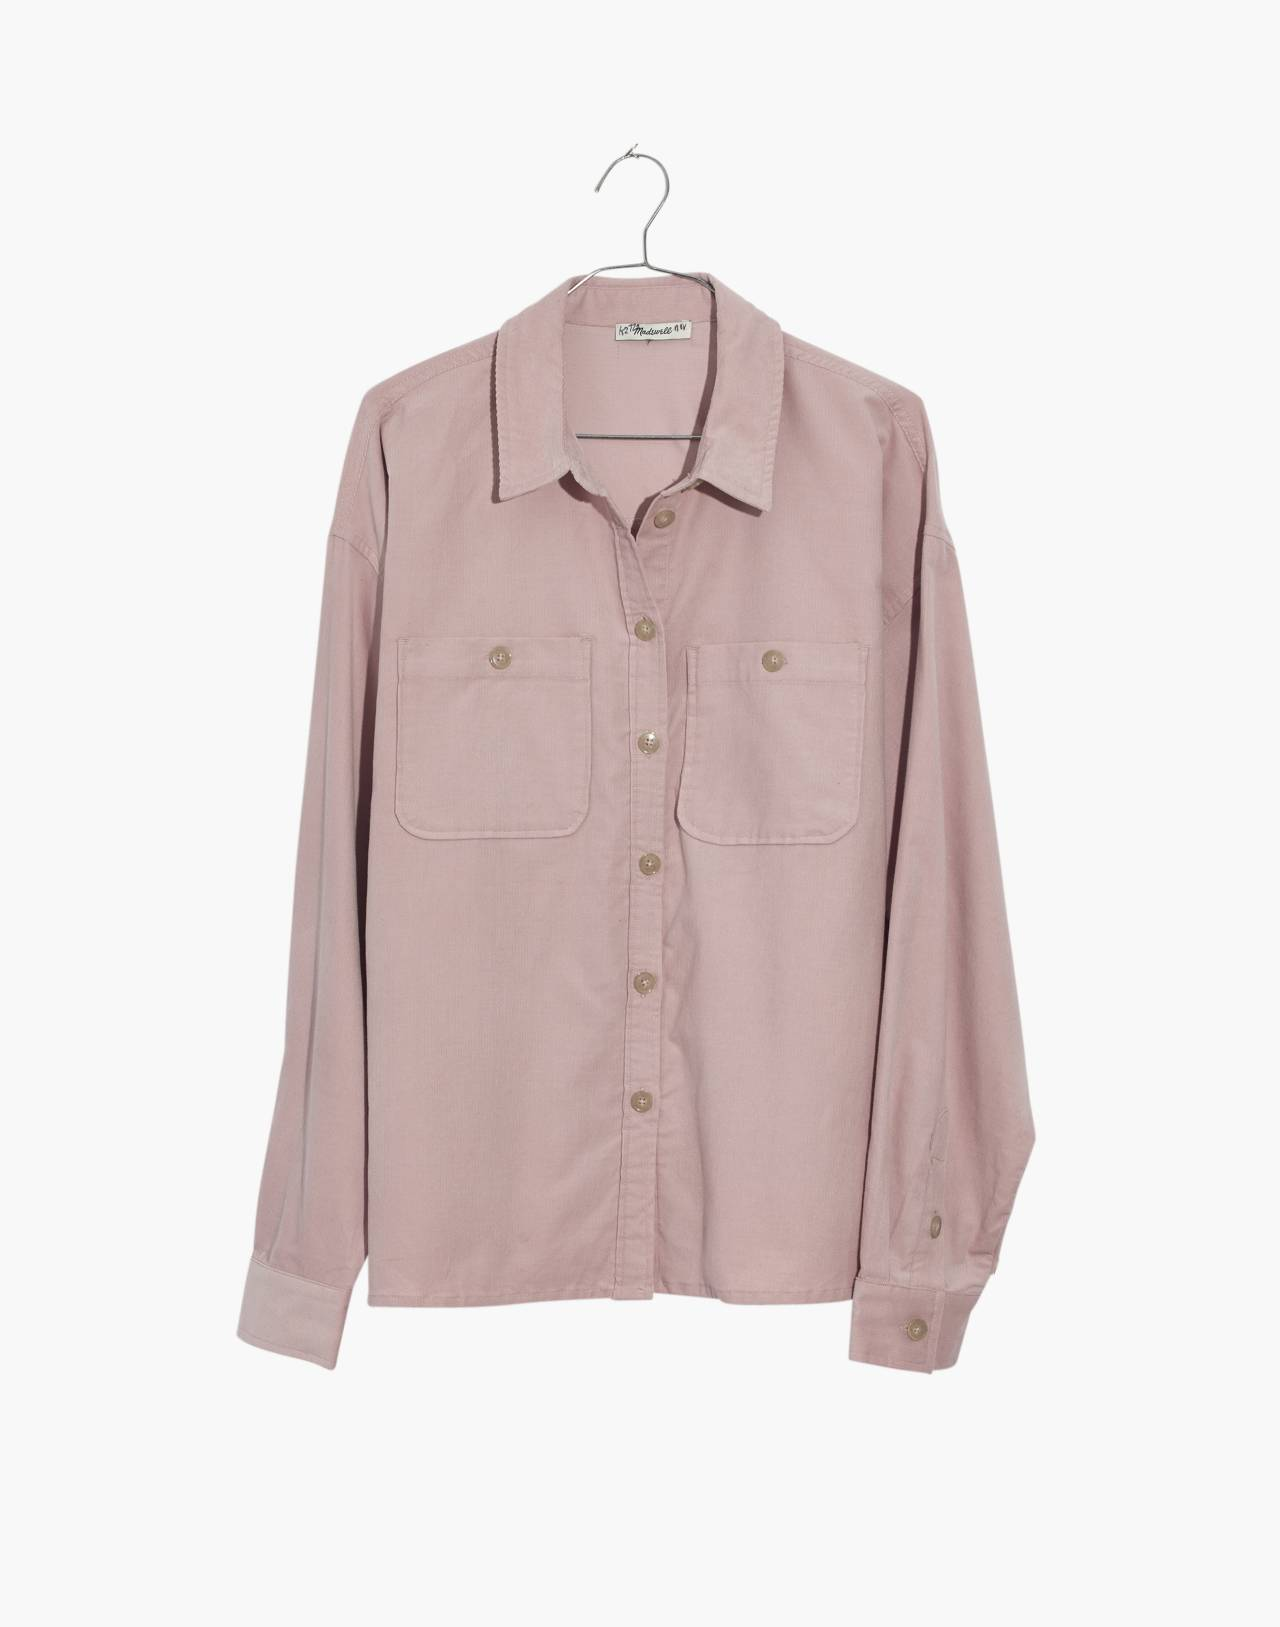 Corduroy Shirt-Jacket in wisteria dove image 4